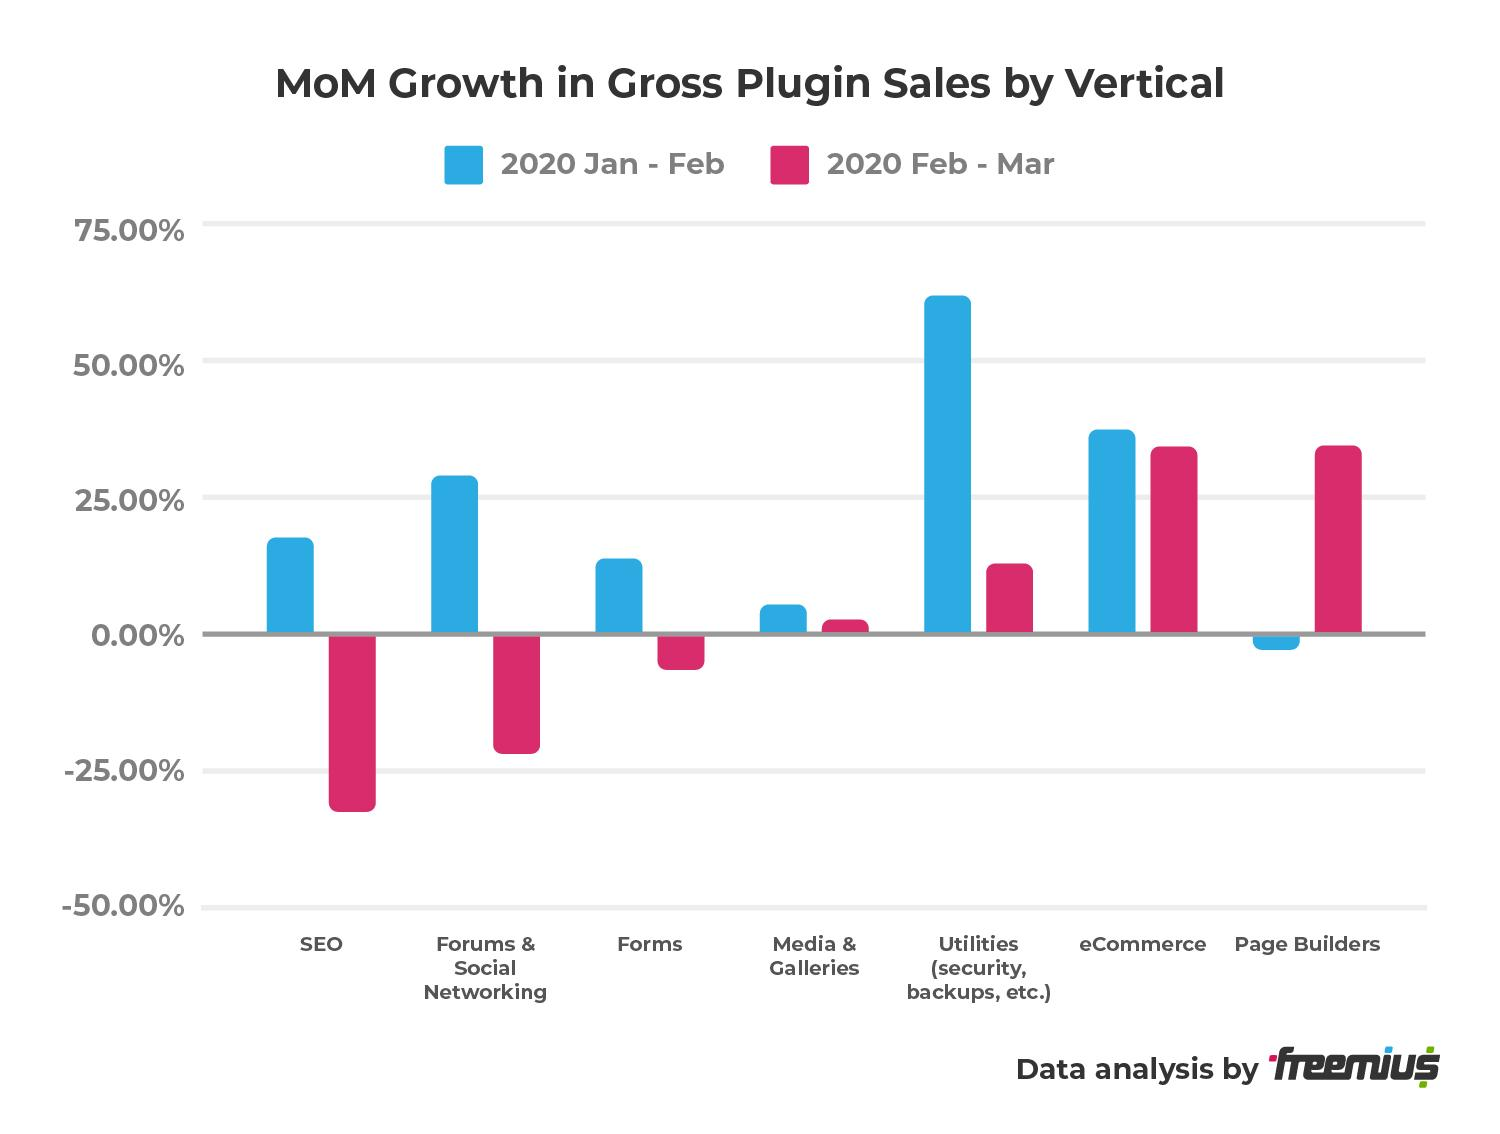 MoM Growth in Gross Plugin Sales by Vertical